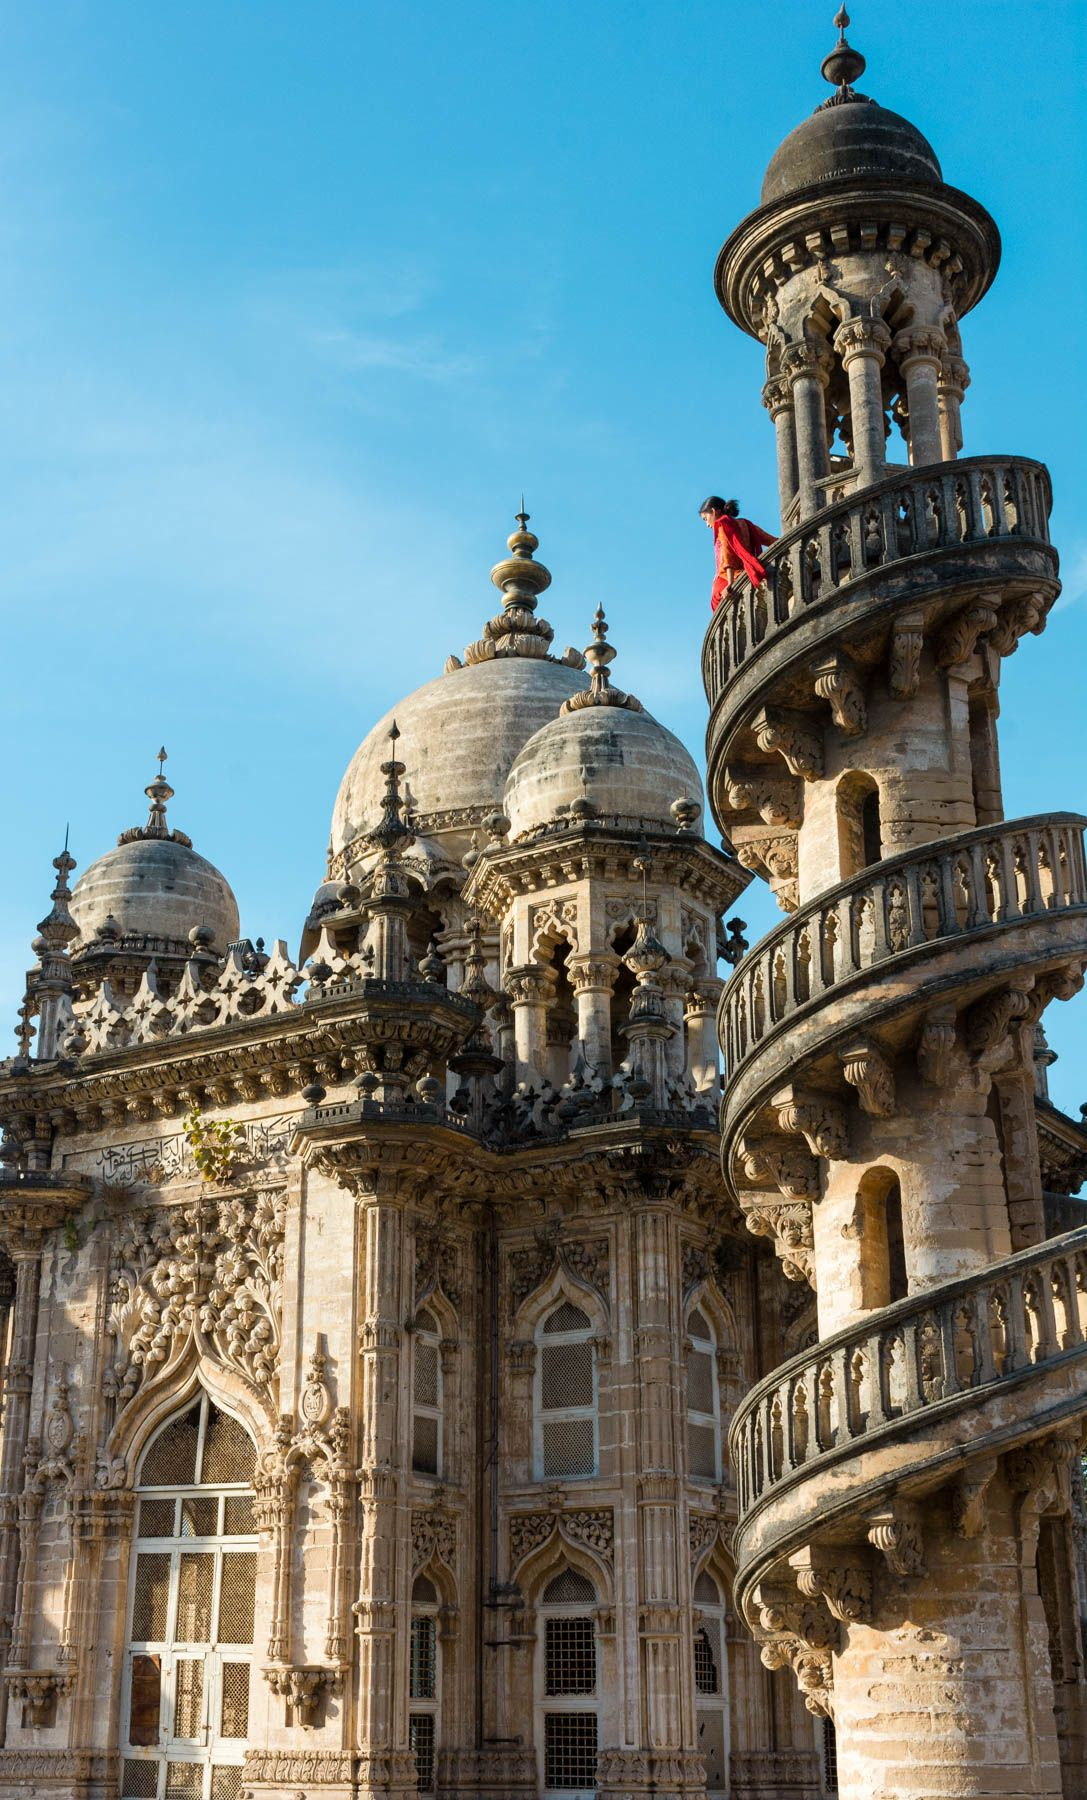 the spiral minarets of the mahabat maqbara in junagadh, a city in